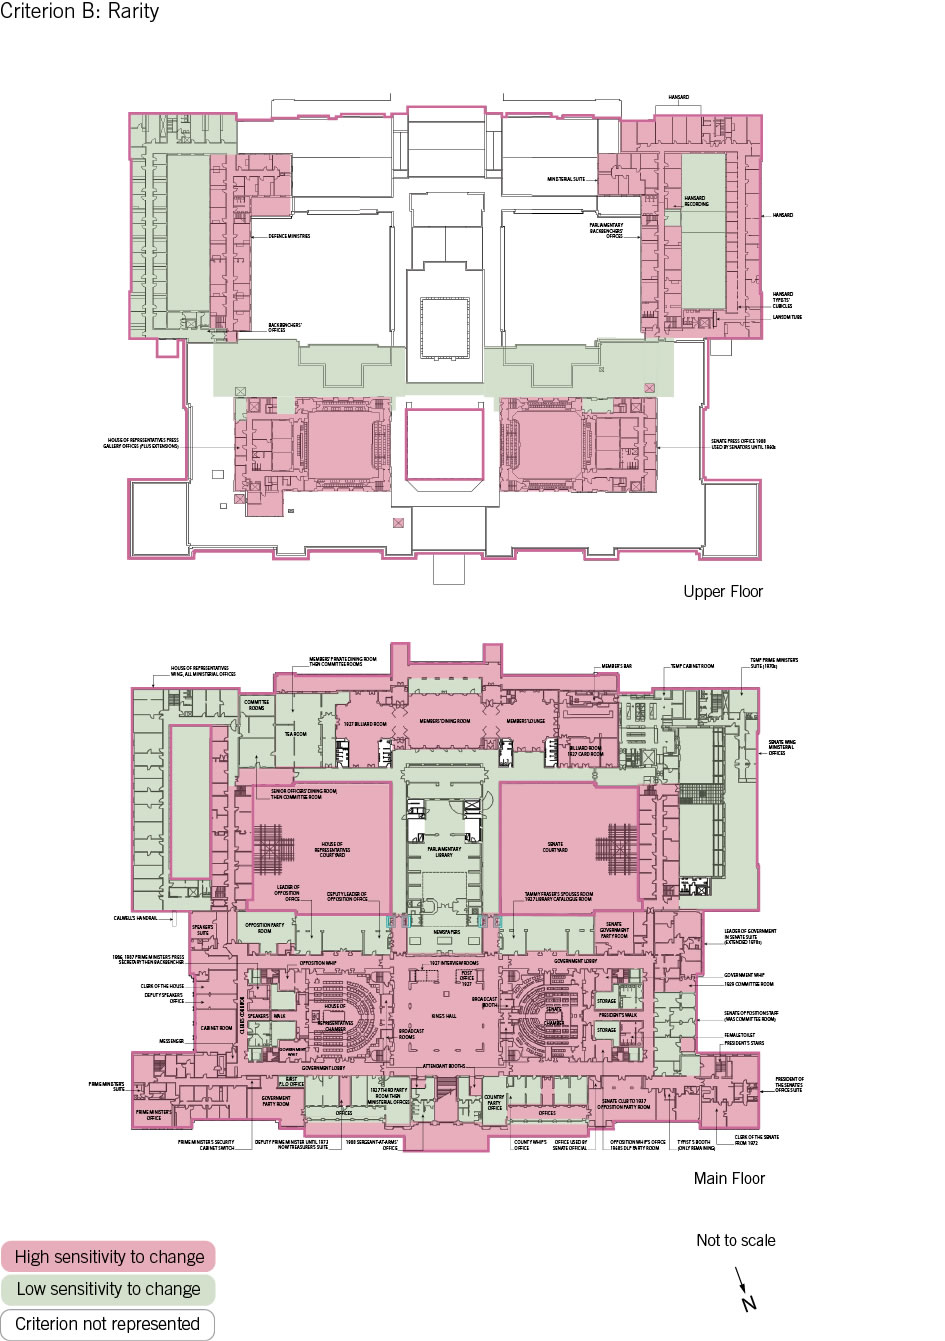 Old Parliament House upper and main floor plan showing the zones according to criterion B: rarity.